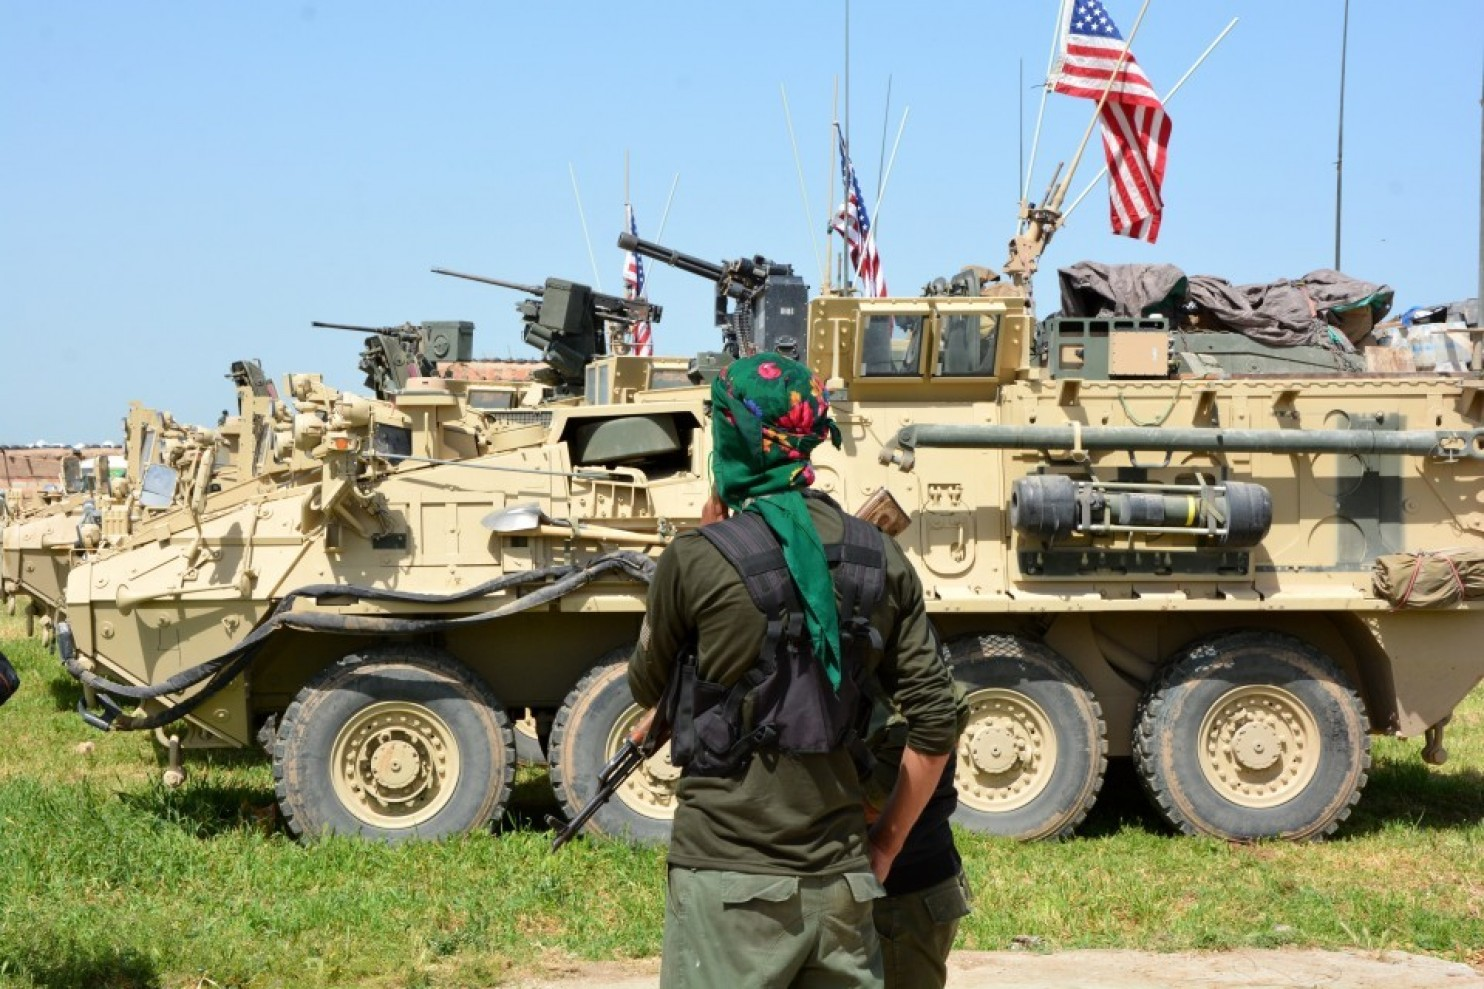 Thomas Gibbons-Neff and Missy Ryan, In blow to U.S.-Turkey ties, Trump administration approves plan to directly arm Syrian Kurds against Islamic State